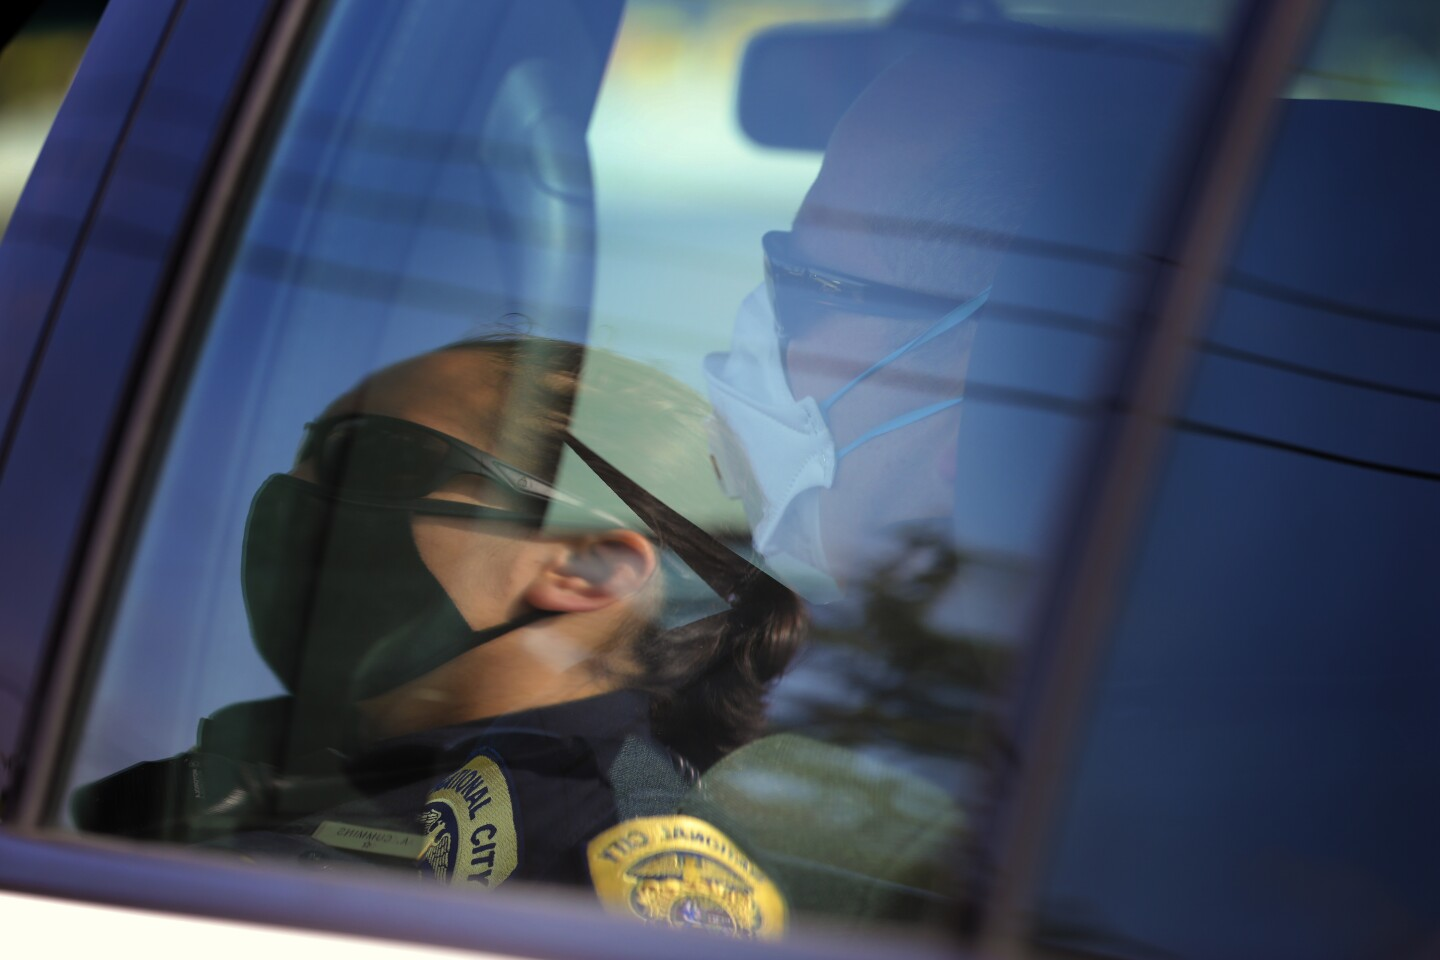 Soon after their routine squad line at police headquarters, National City Police Officer Ashley Cummins meets in the field with Sgt. Aaron DePascale. To protect officers from the possibility of being exposed to the coronavirus, officers at National City police Department where protective mask and eye protection.